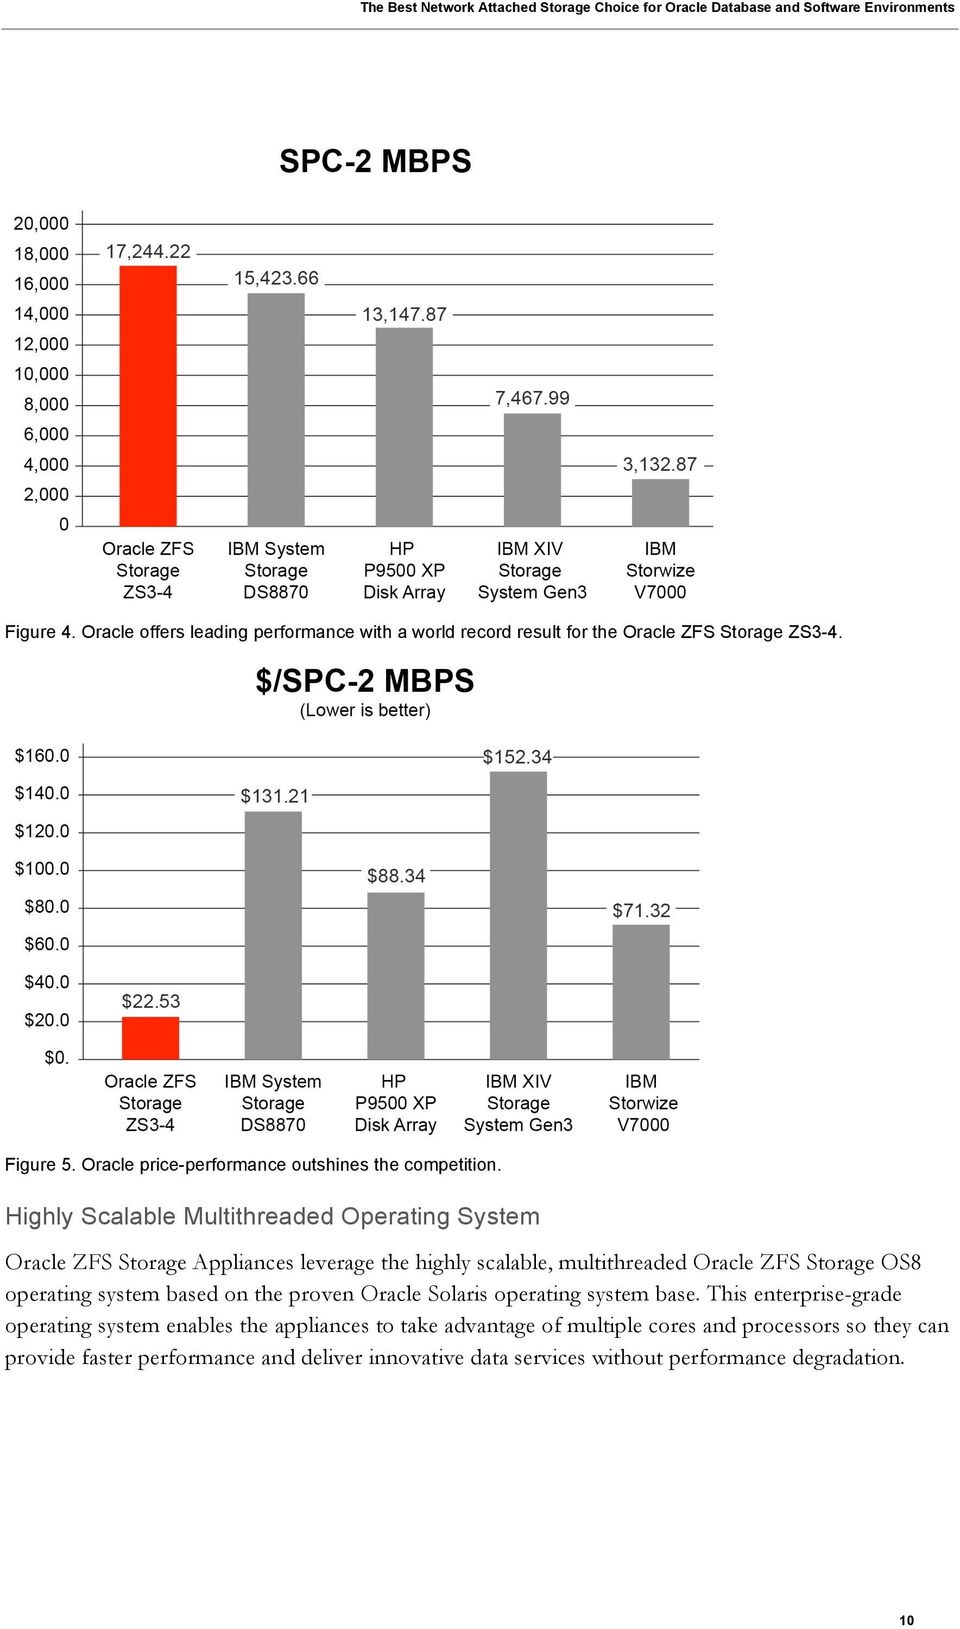 Highly Scalable Multithreaded Operating System Oracle ZFS Storage Appliances leverage the highly scalable, multithreaded Oracle ZFS Storage OS8